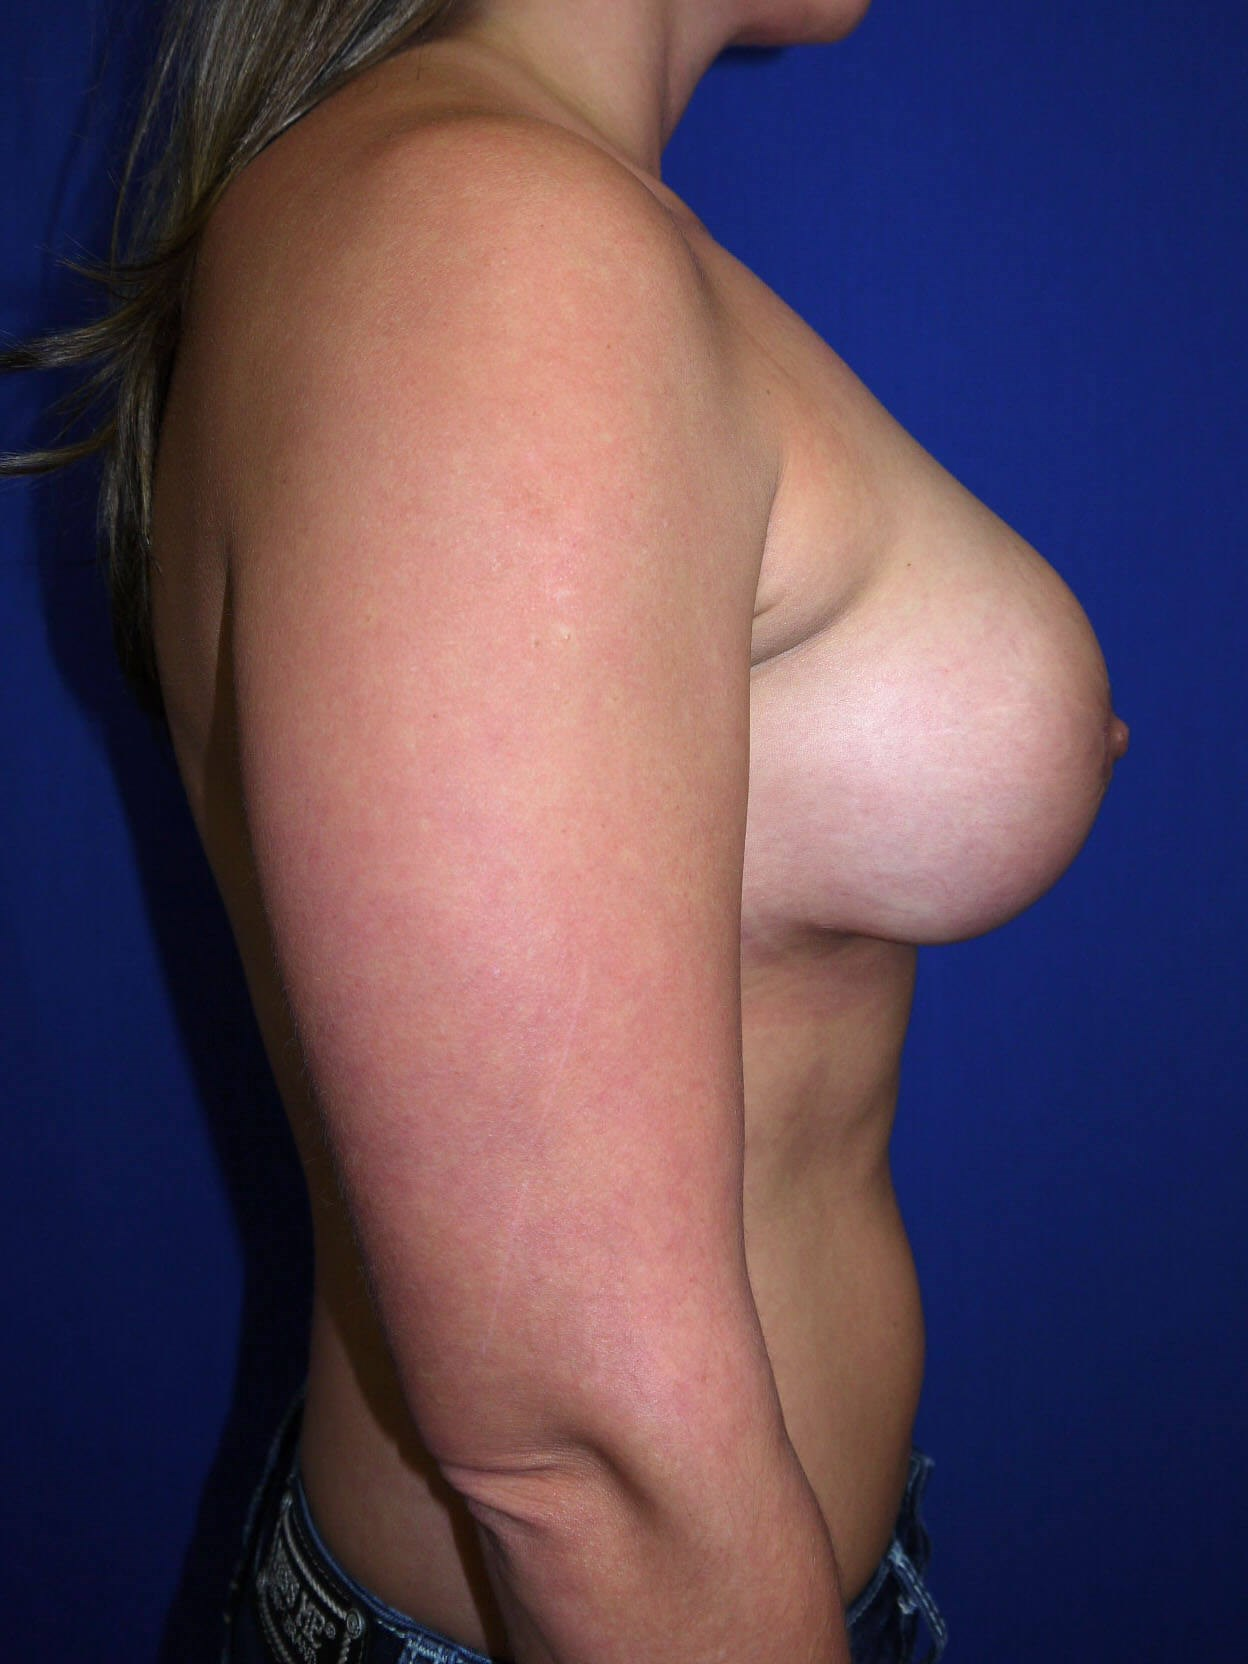 Fat Transfer to Breast After - Right Side